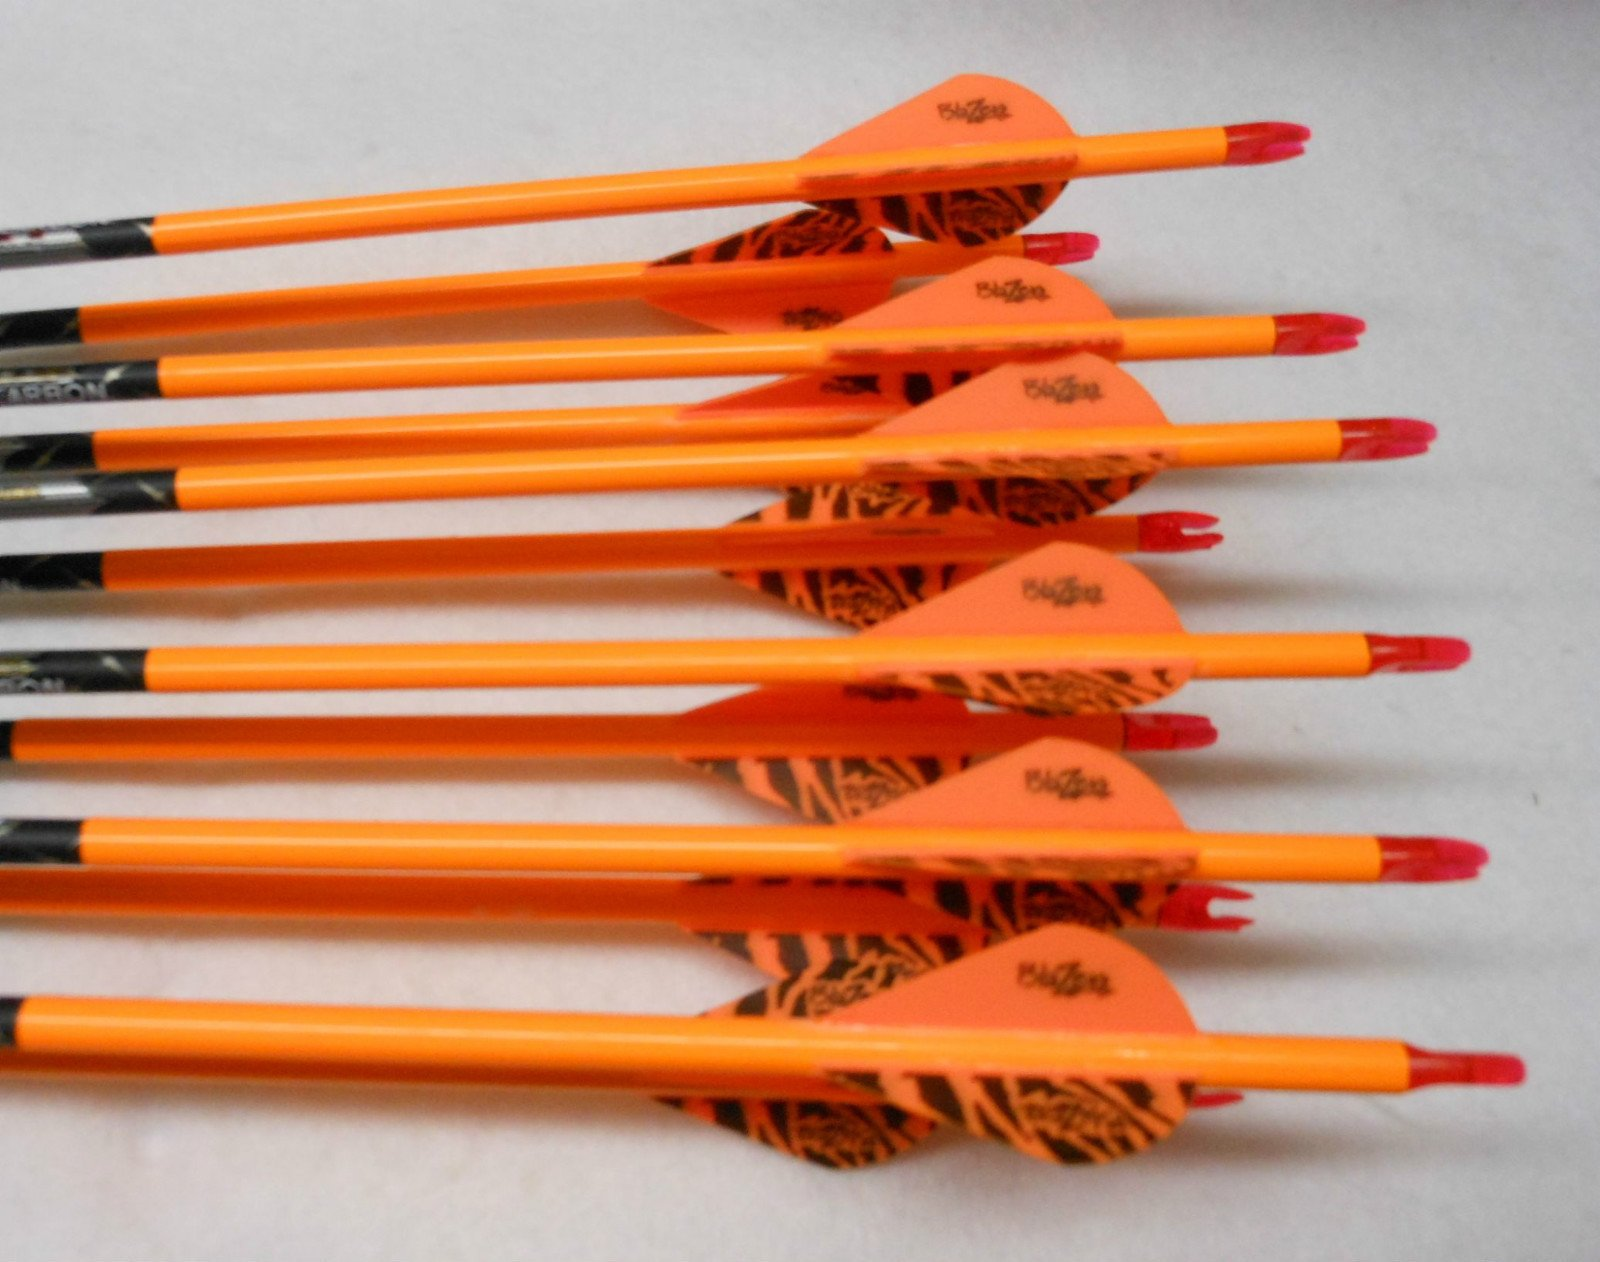 Gold Tip XT Hunter 5575/400 Carbon Arrows w/Blazer Vanes Wraps 1Dz.